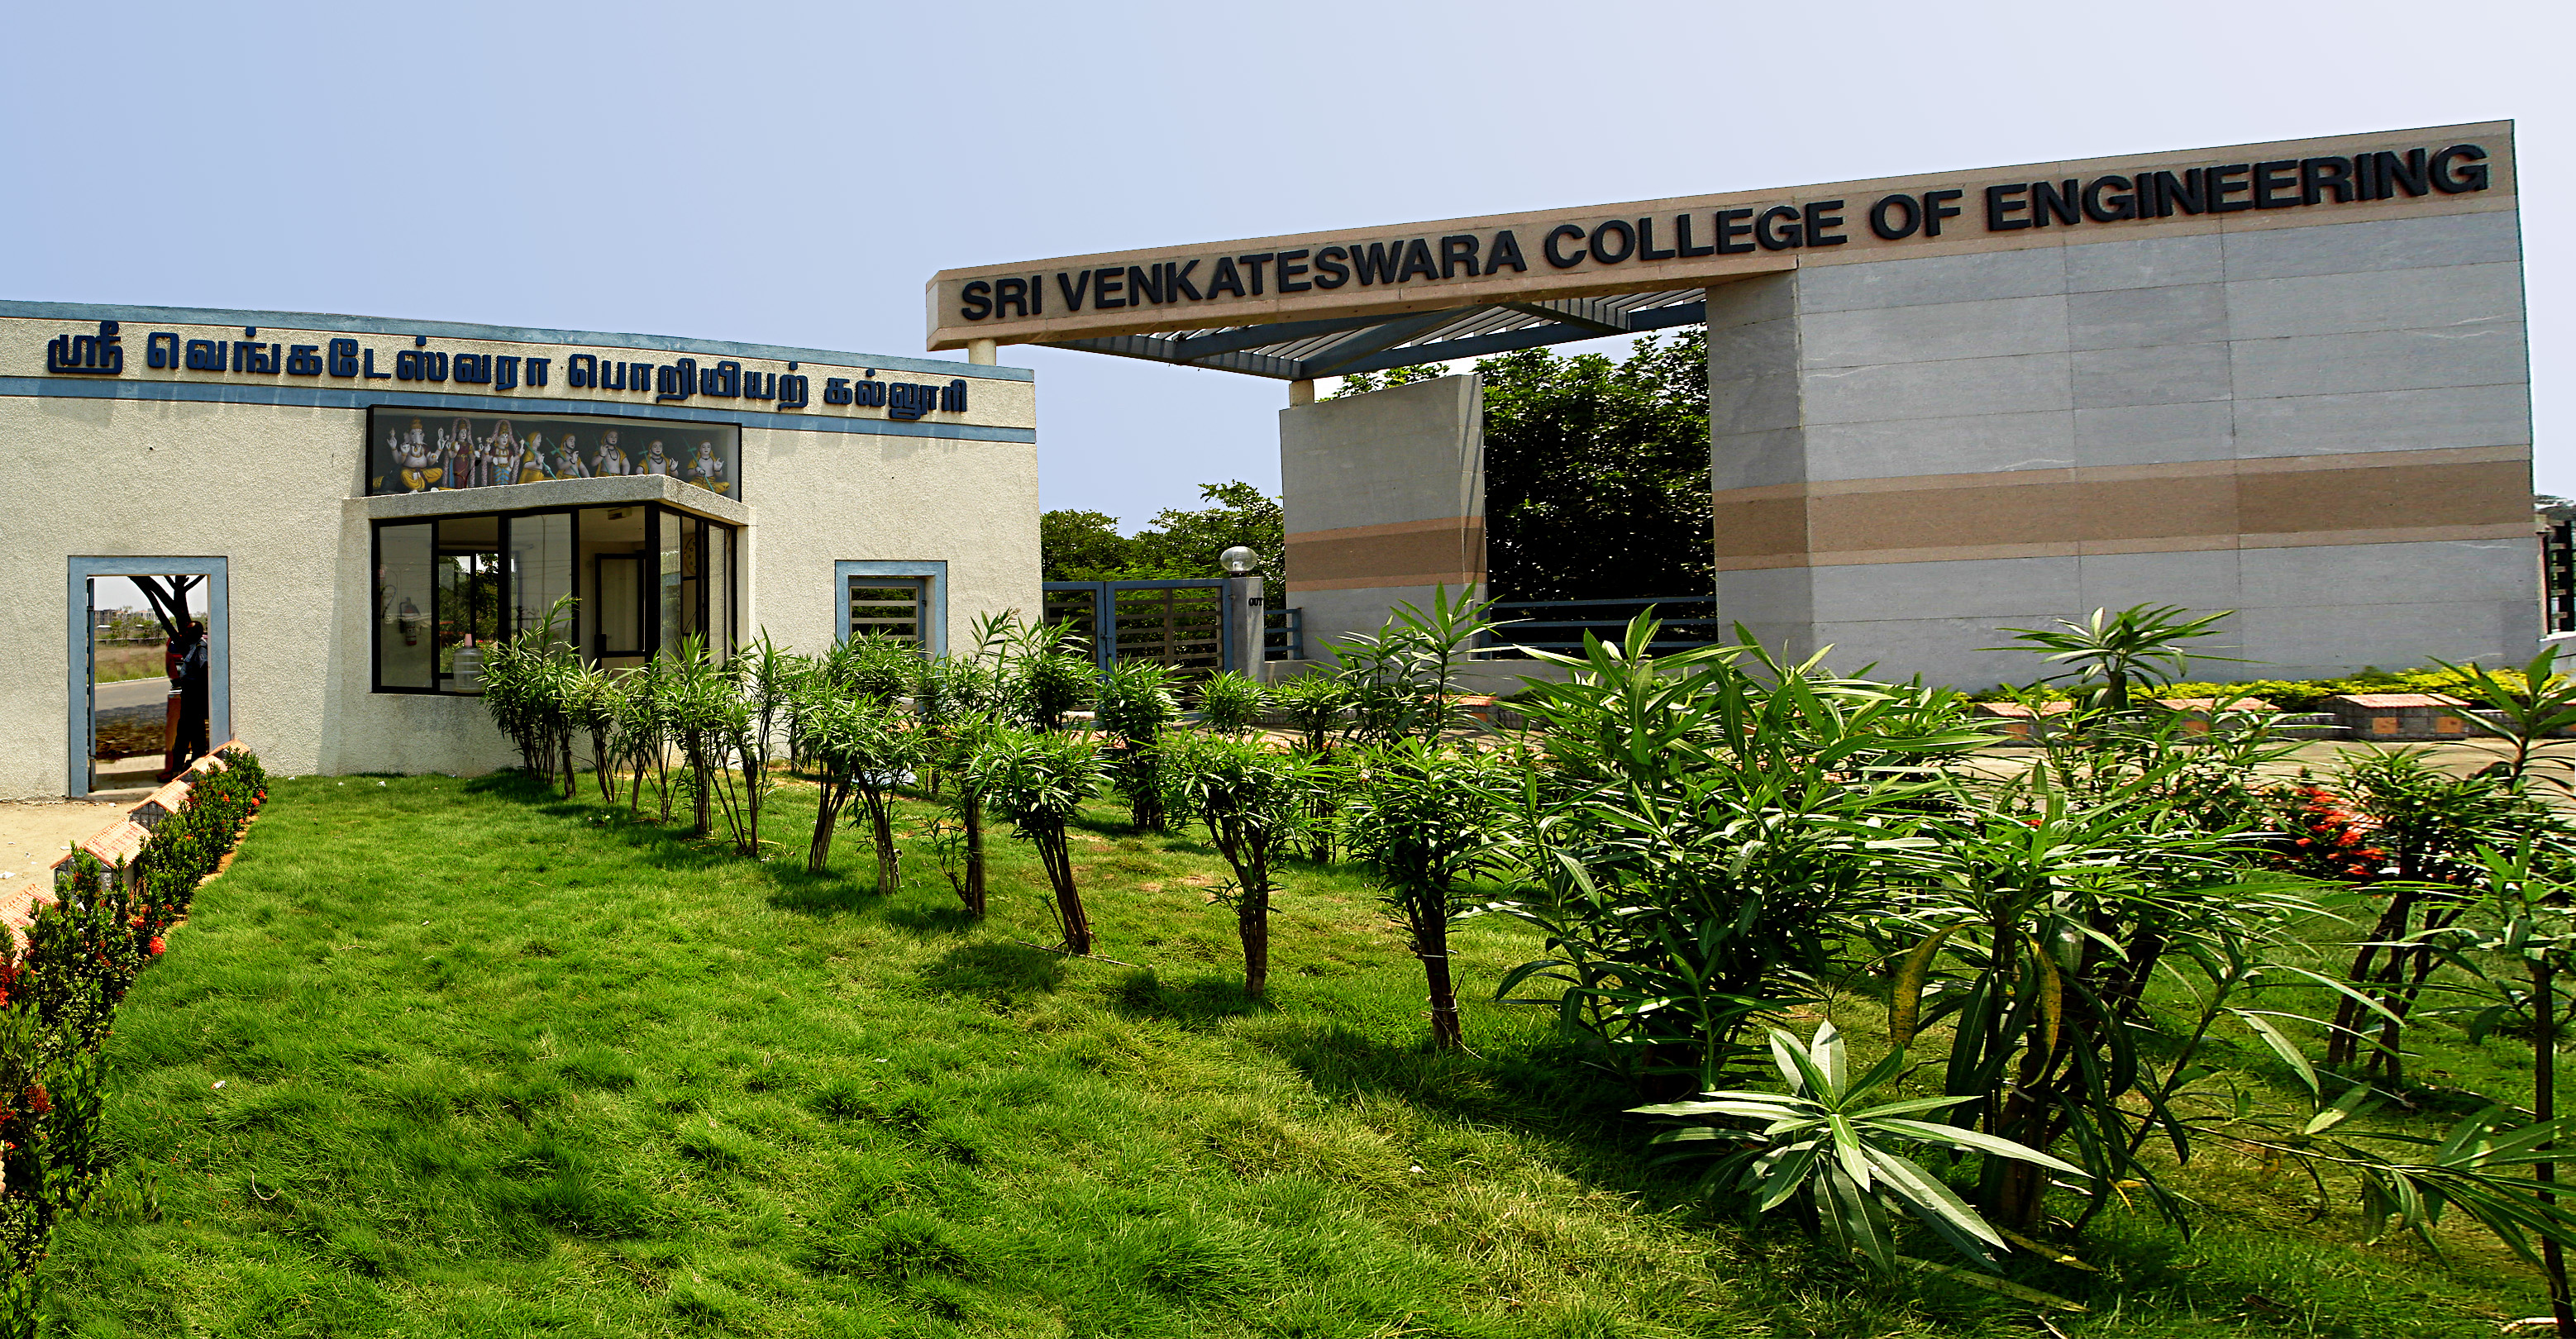 College Entrance view